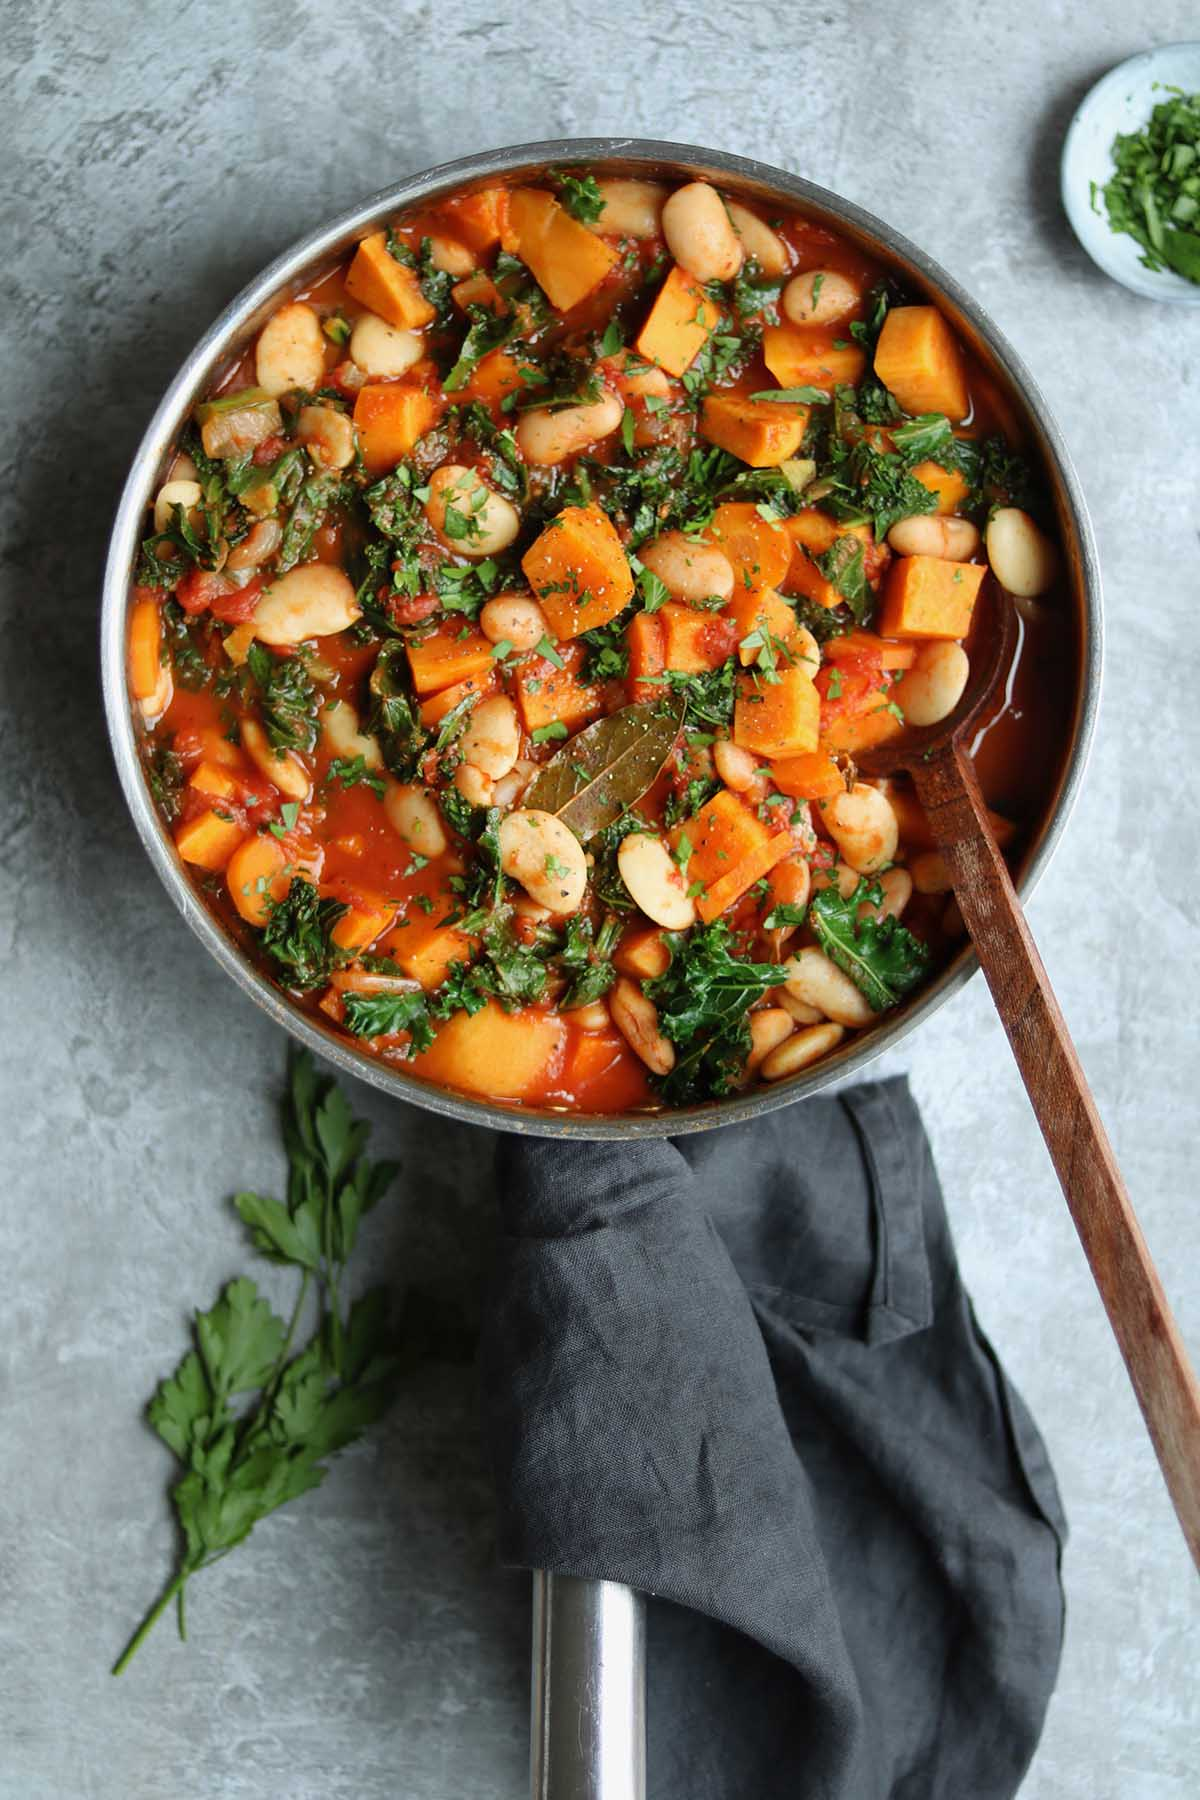 Butter beans with carrots, kale and sweet potatoes in tomato sauce.